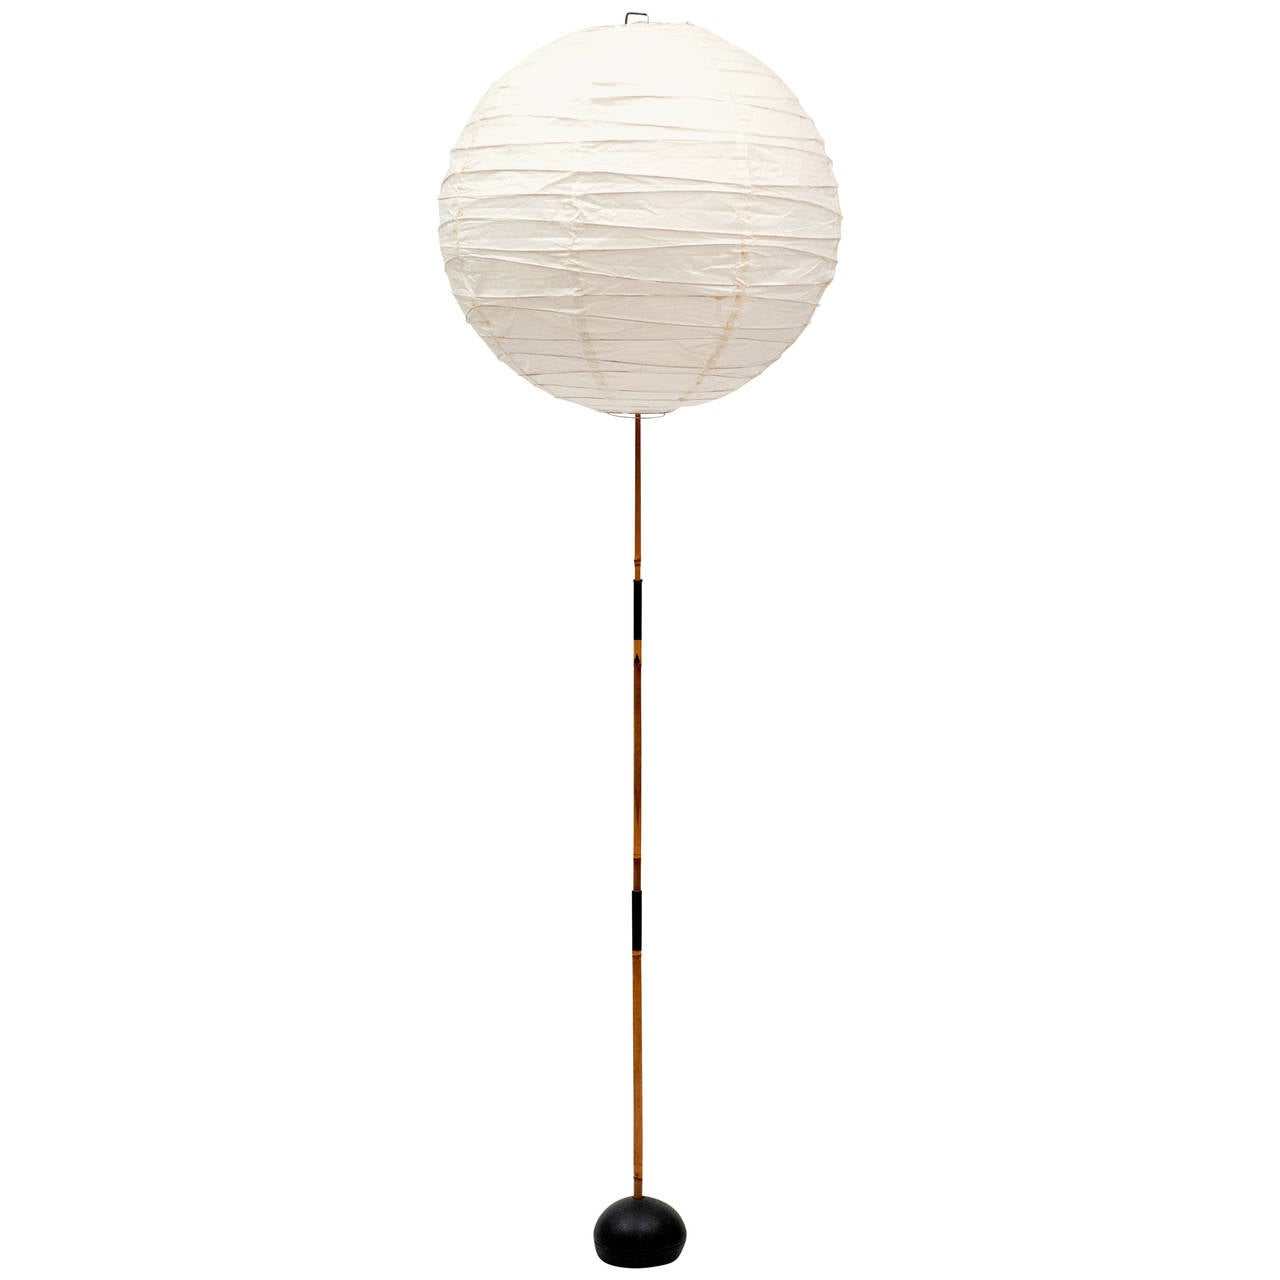 isamu noguchi bamboo and paper lantern floor lamp 1950s. Black Bedroom Furniture Sets. Home Design Ideas